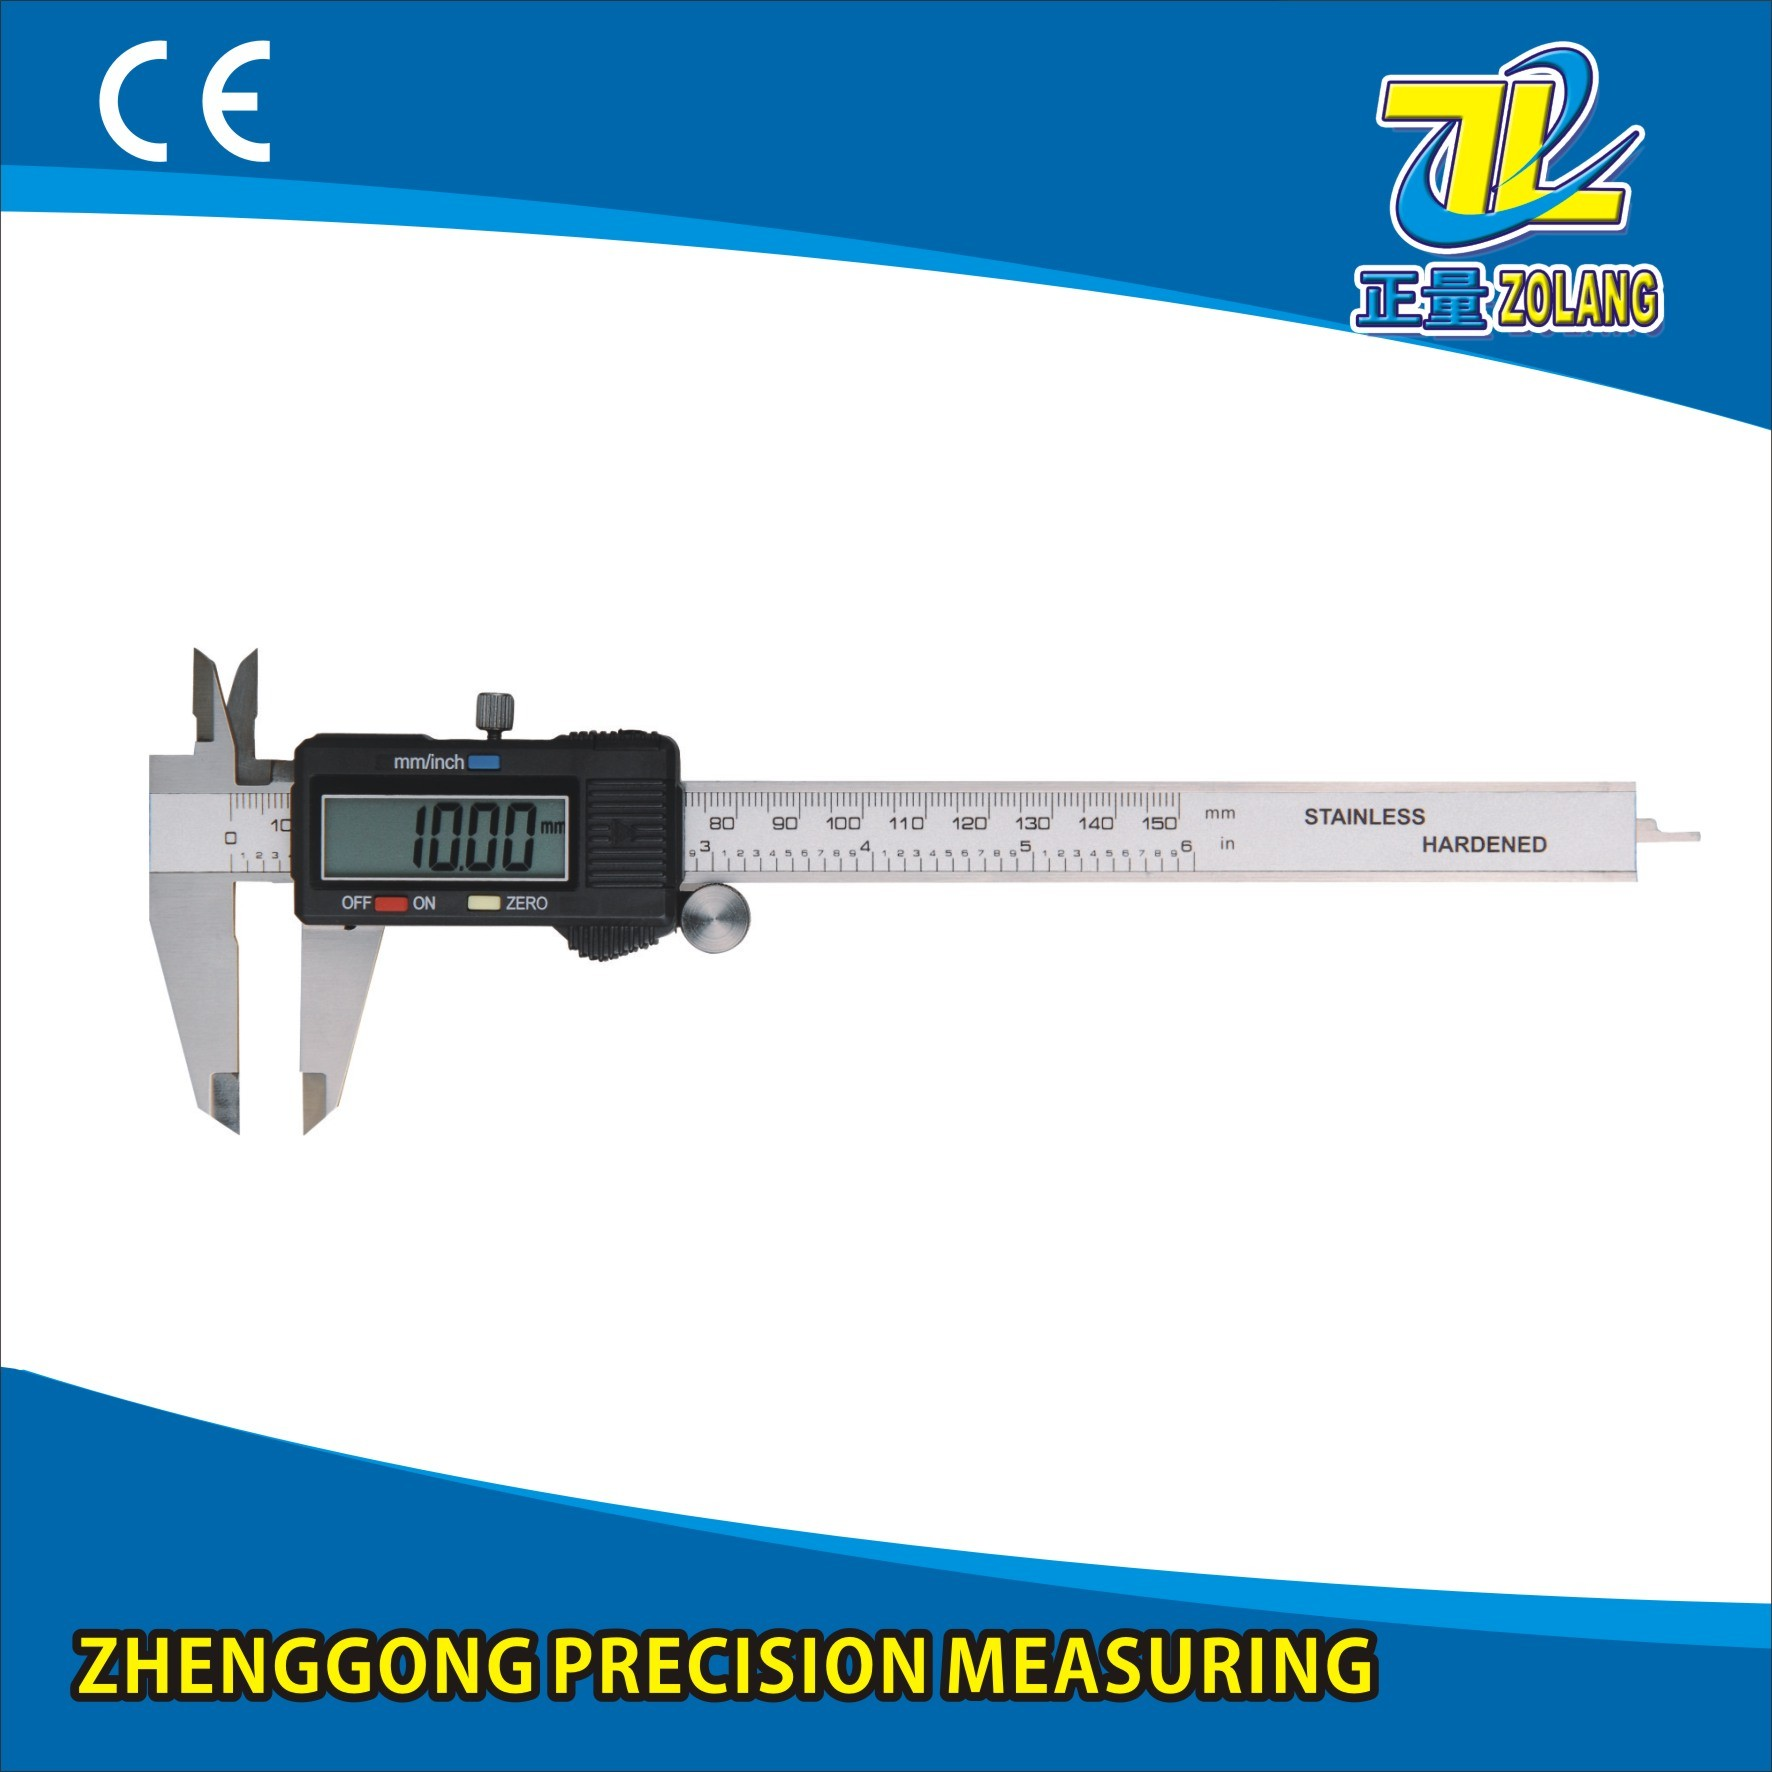 Large LCD Industrial-Grade Stainless Steel Digital Display Calipers Measuring Tool